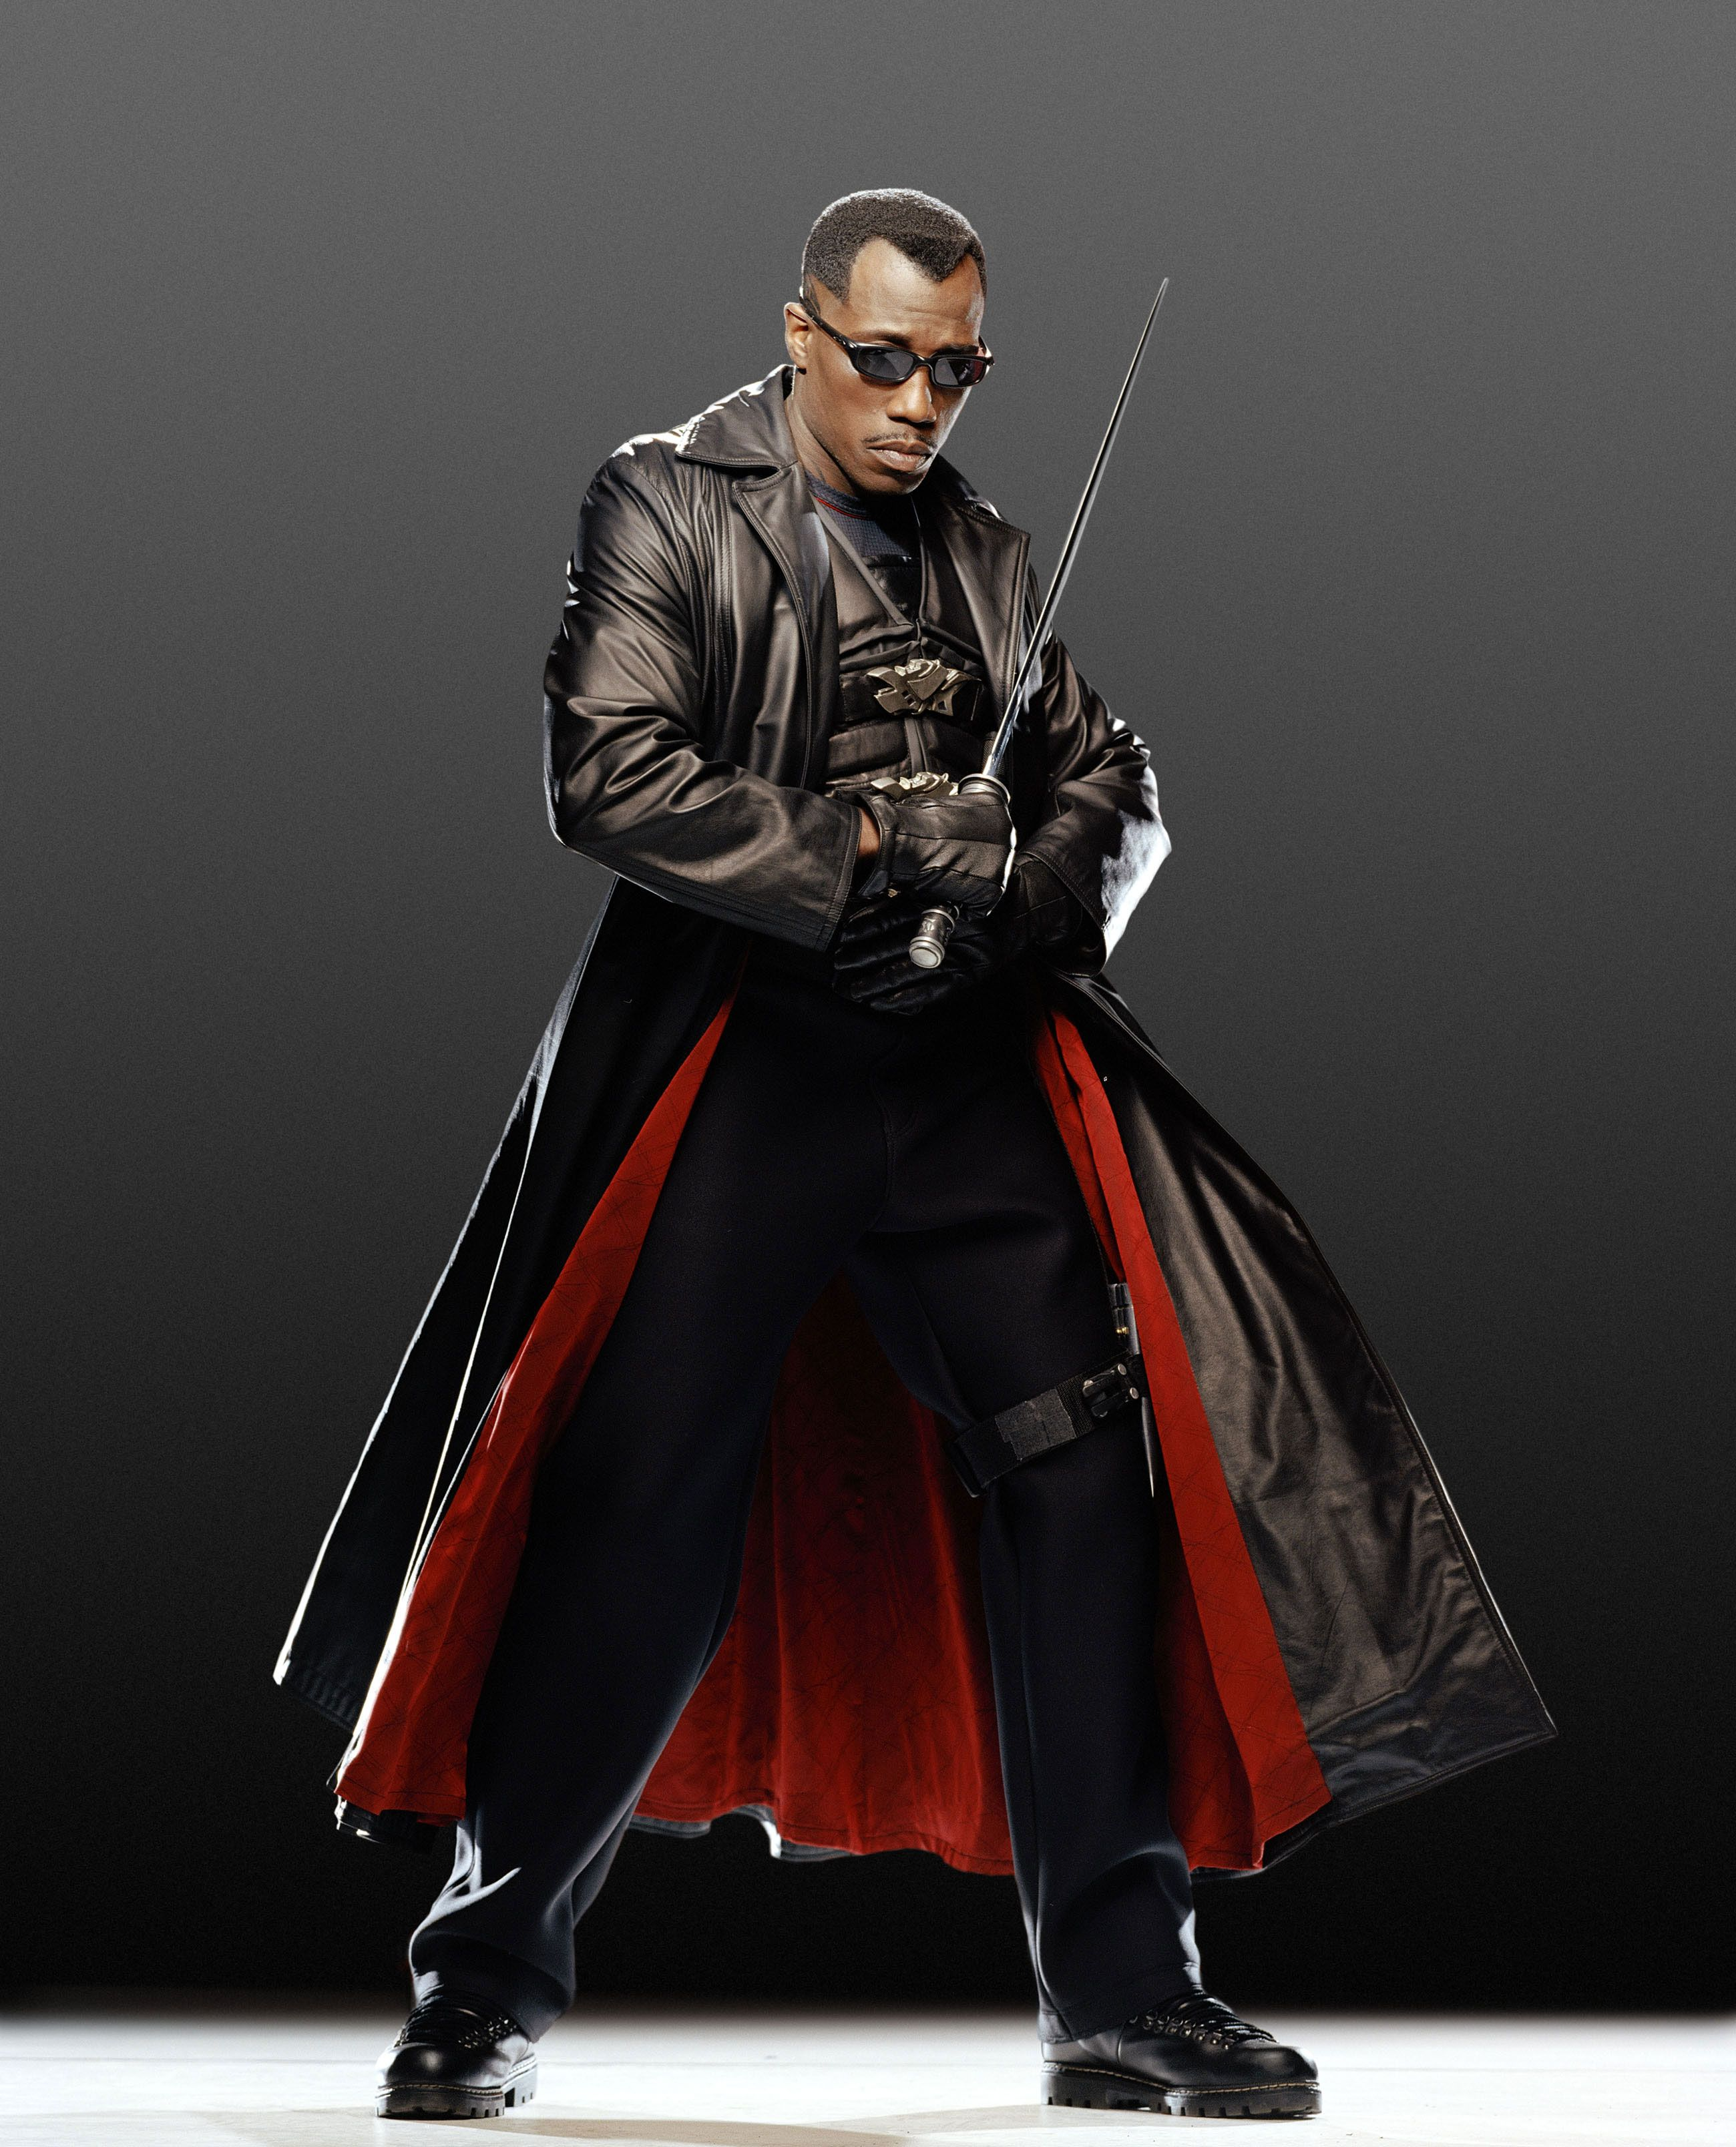 The original Blade nearly introduced another Marvel character 20 years early